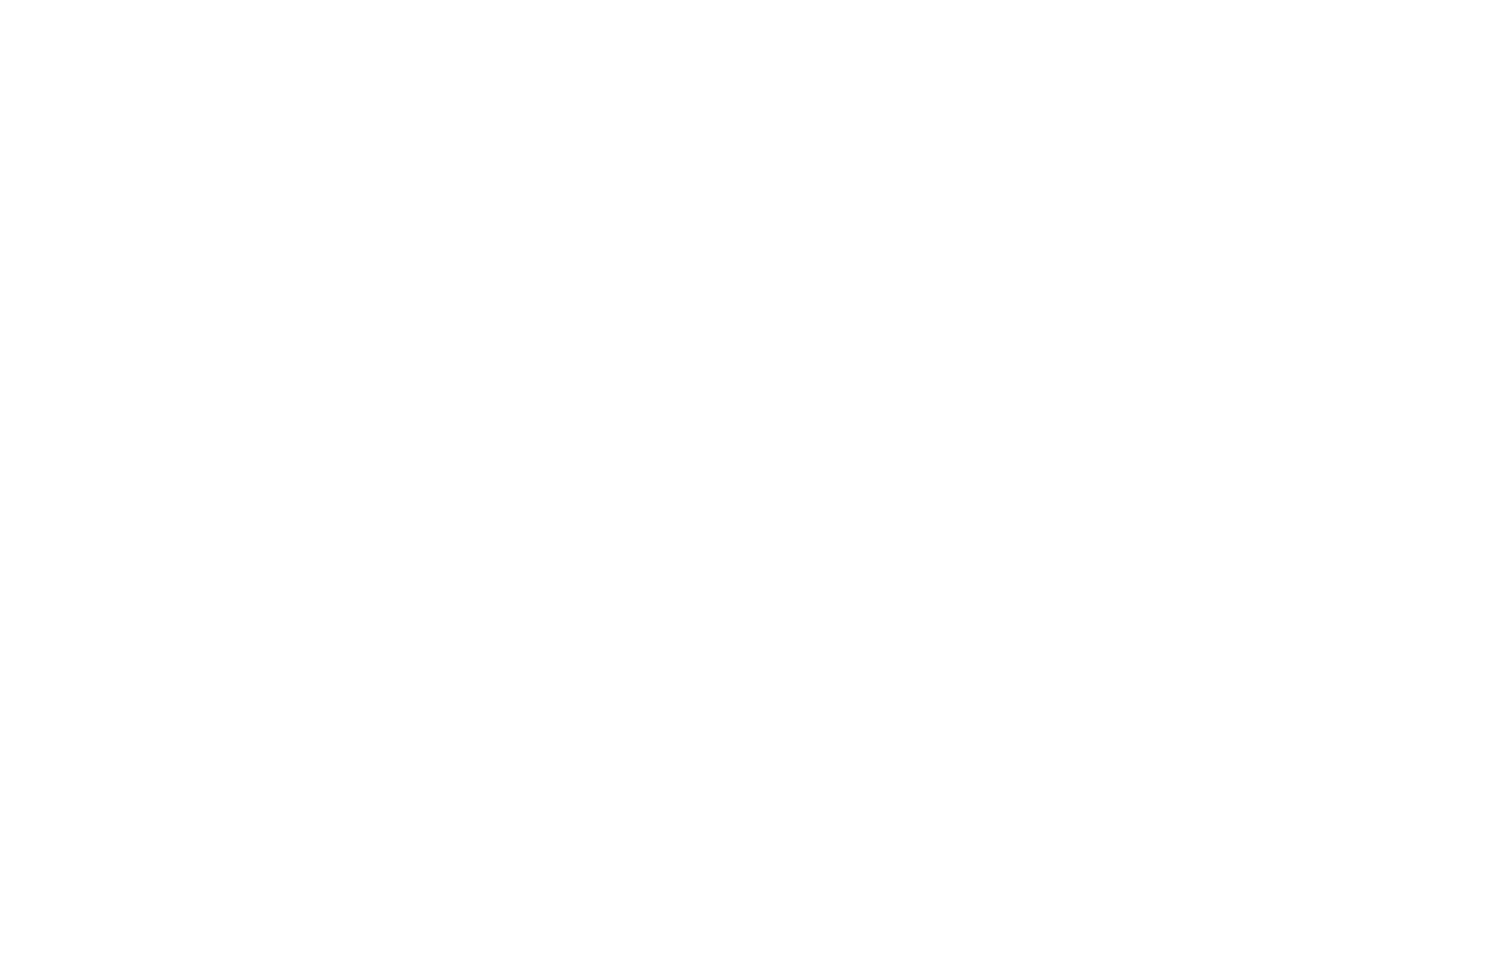 The Sprott Foundation